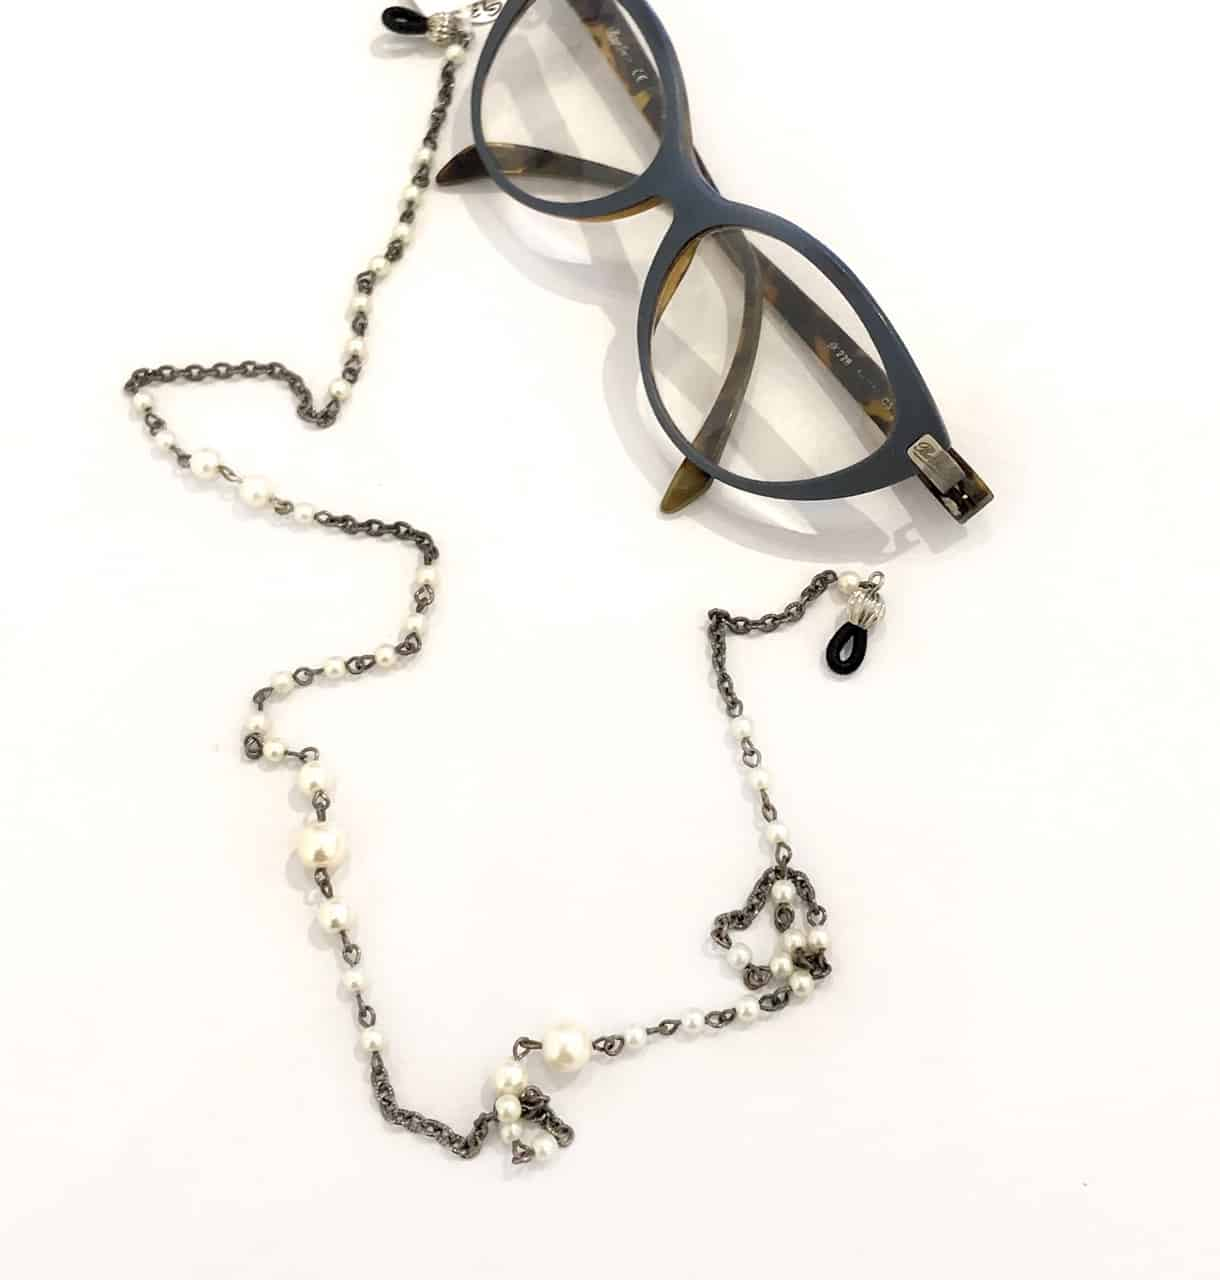 Glasses Chain Made With Repurposed Vintage Pearl Beads And Chain By My Vintage Obsession